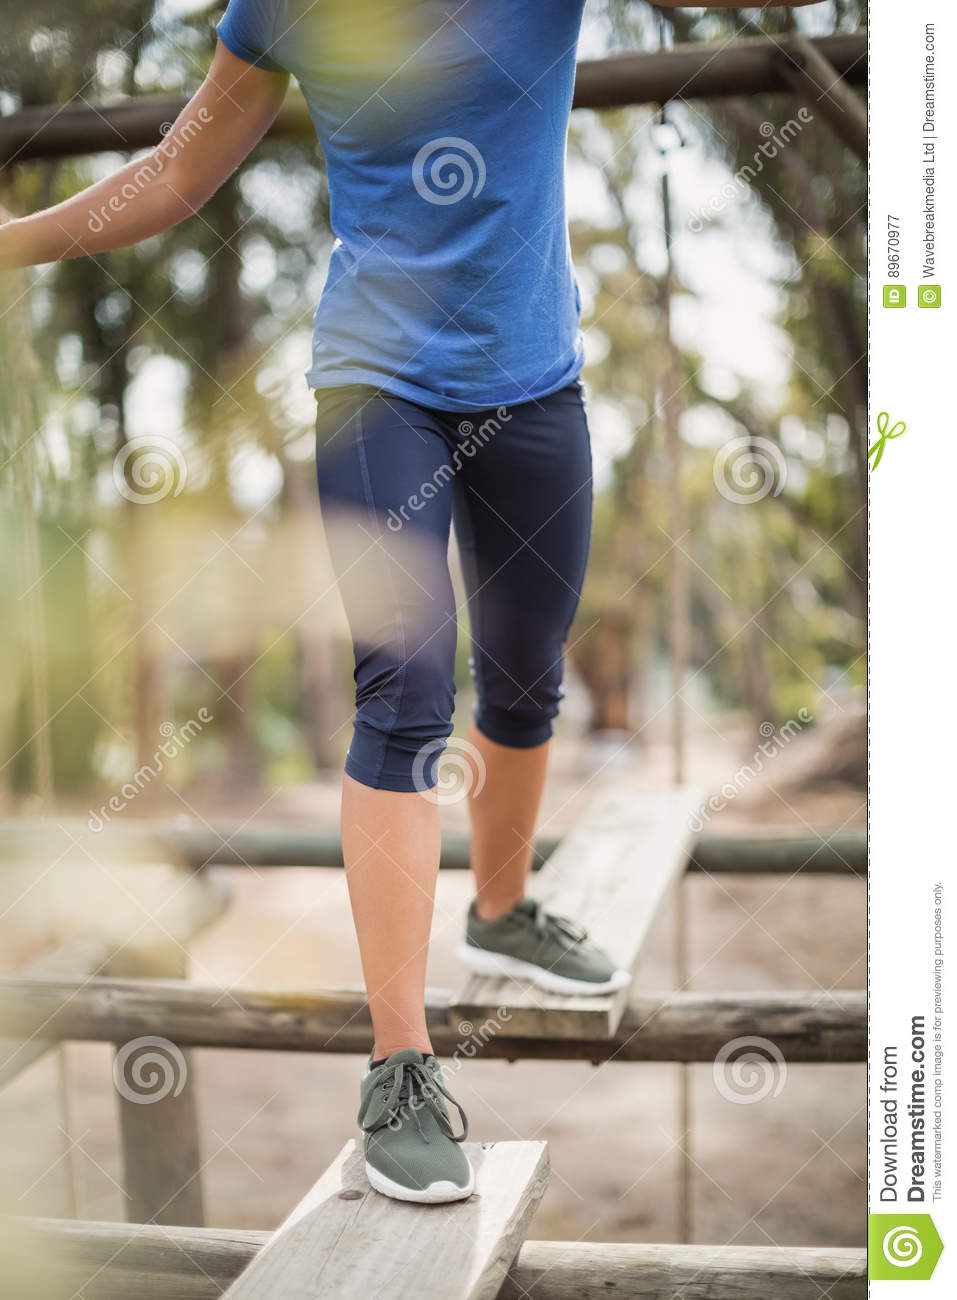 Fit woman during obstacle course training